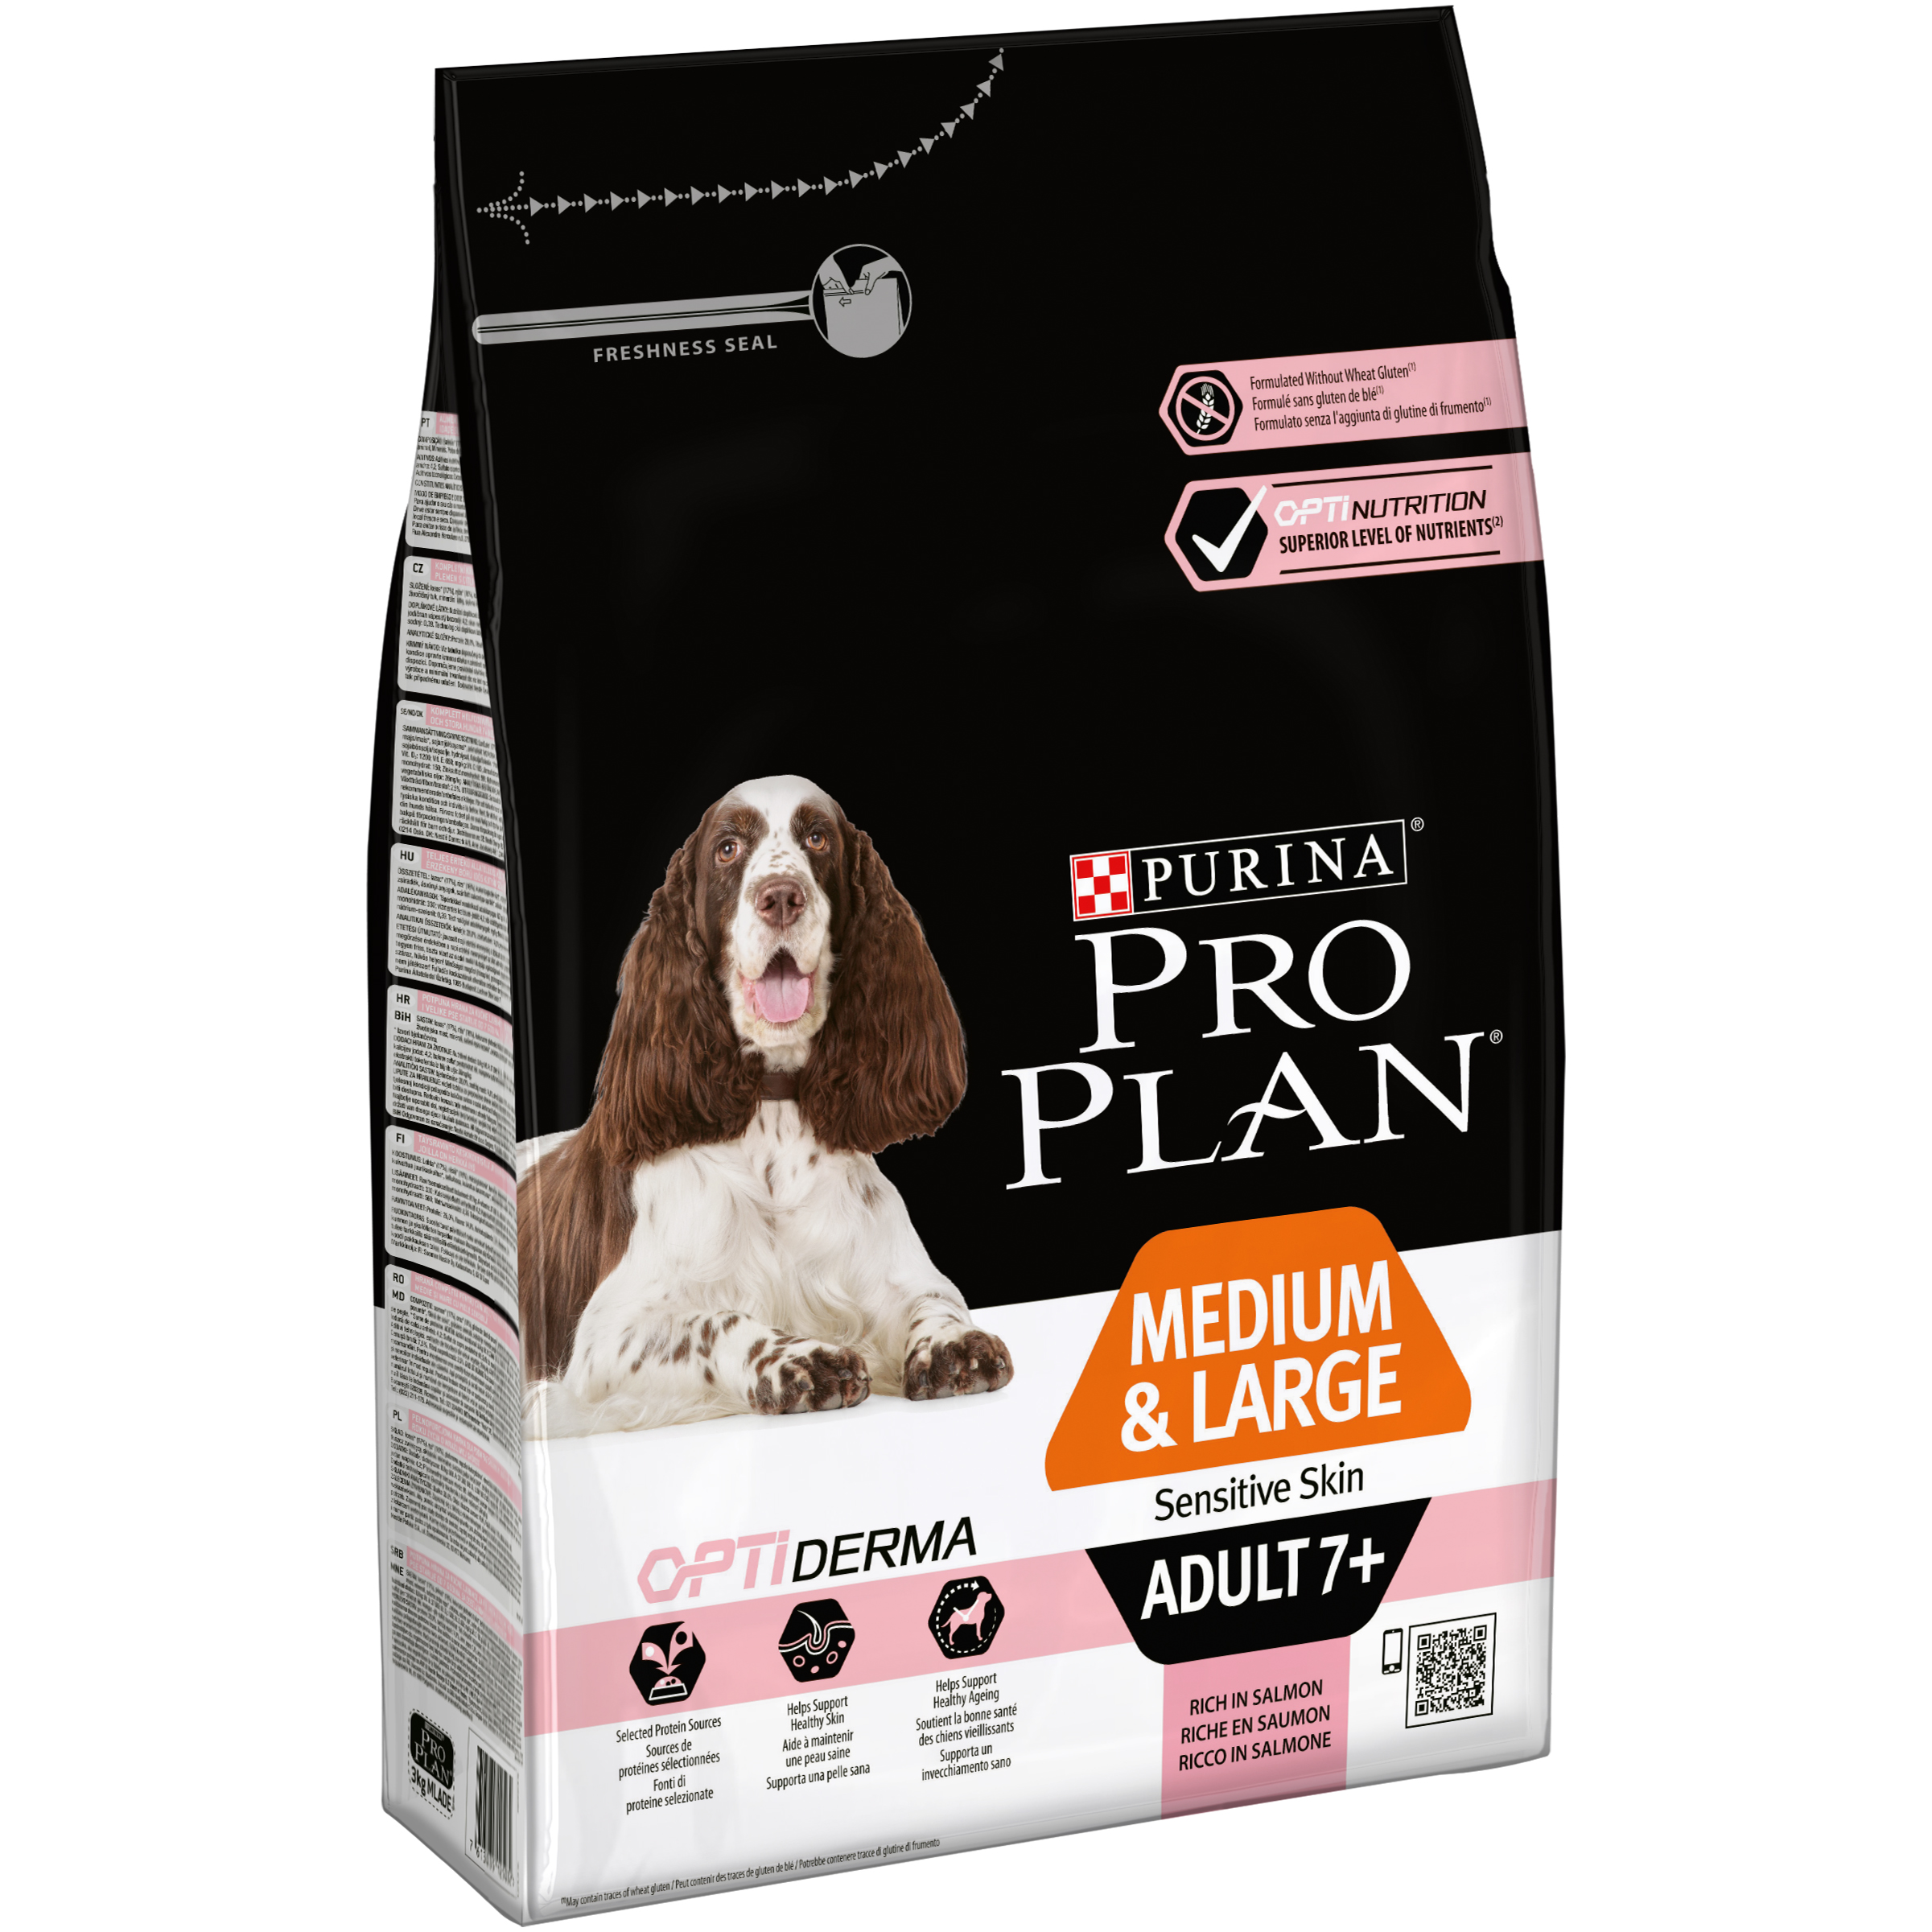 Pro Plan dry food for medium/large adult dogs older than 7 years with sensitive skin, OPTIDERMA complex, salmon and rice, 3 kg сухой корм pro plan optiderma sensitive skin adult 7 medium